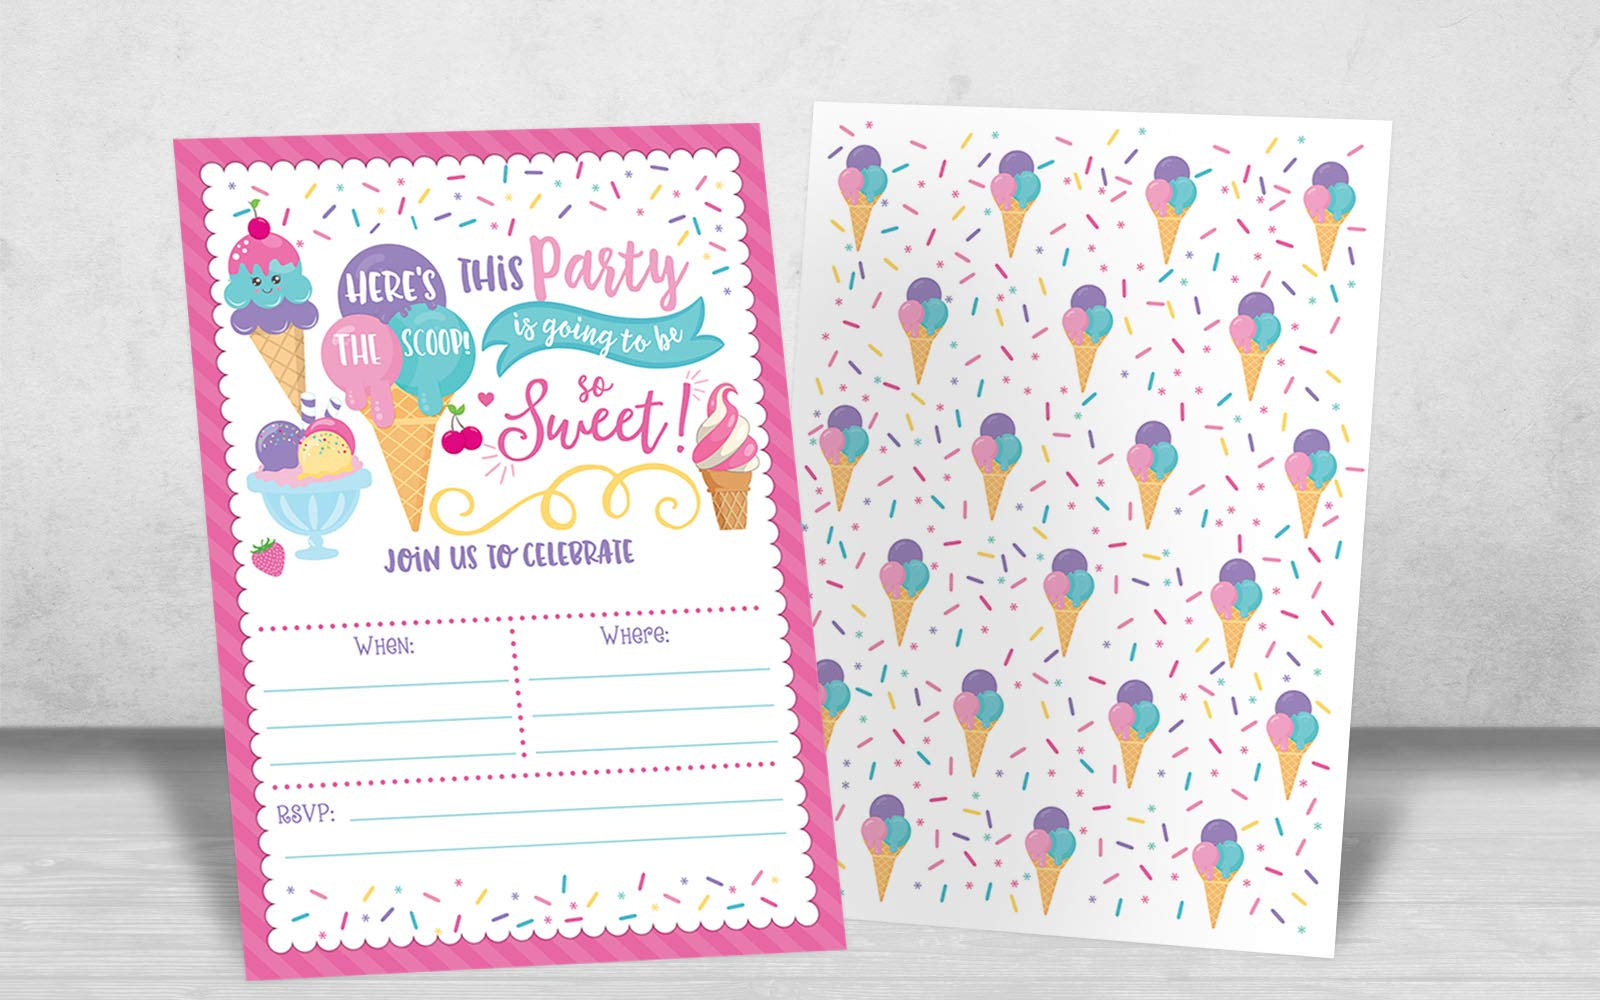 Ice Cream Birthday Party Invitations, Girl Birthday Invitations, Here's The Scoop, Ice Cream Social, 20 Fill in Invitations and Envelopes by Your Main Event Prints (Image #3)